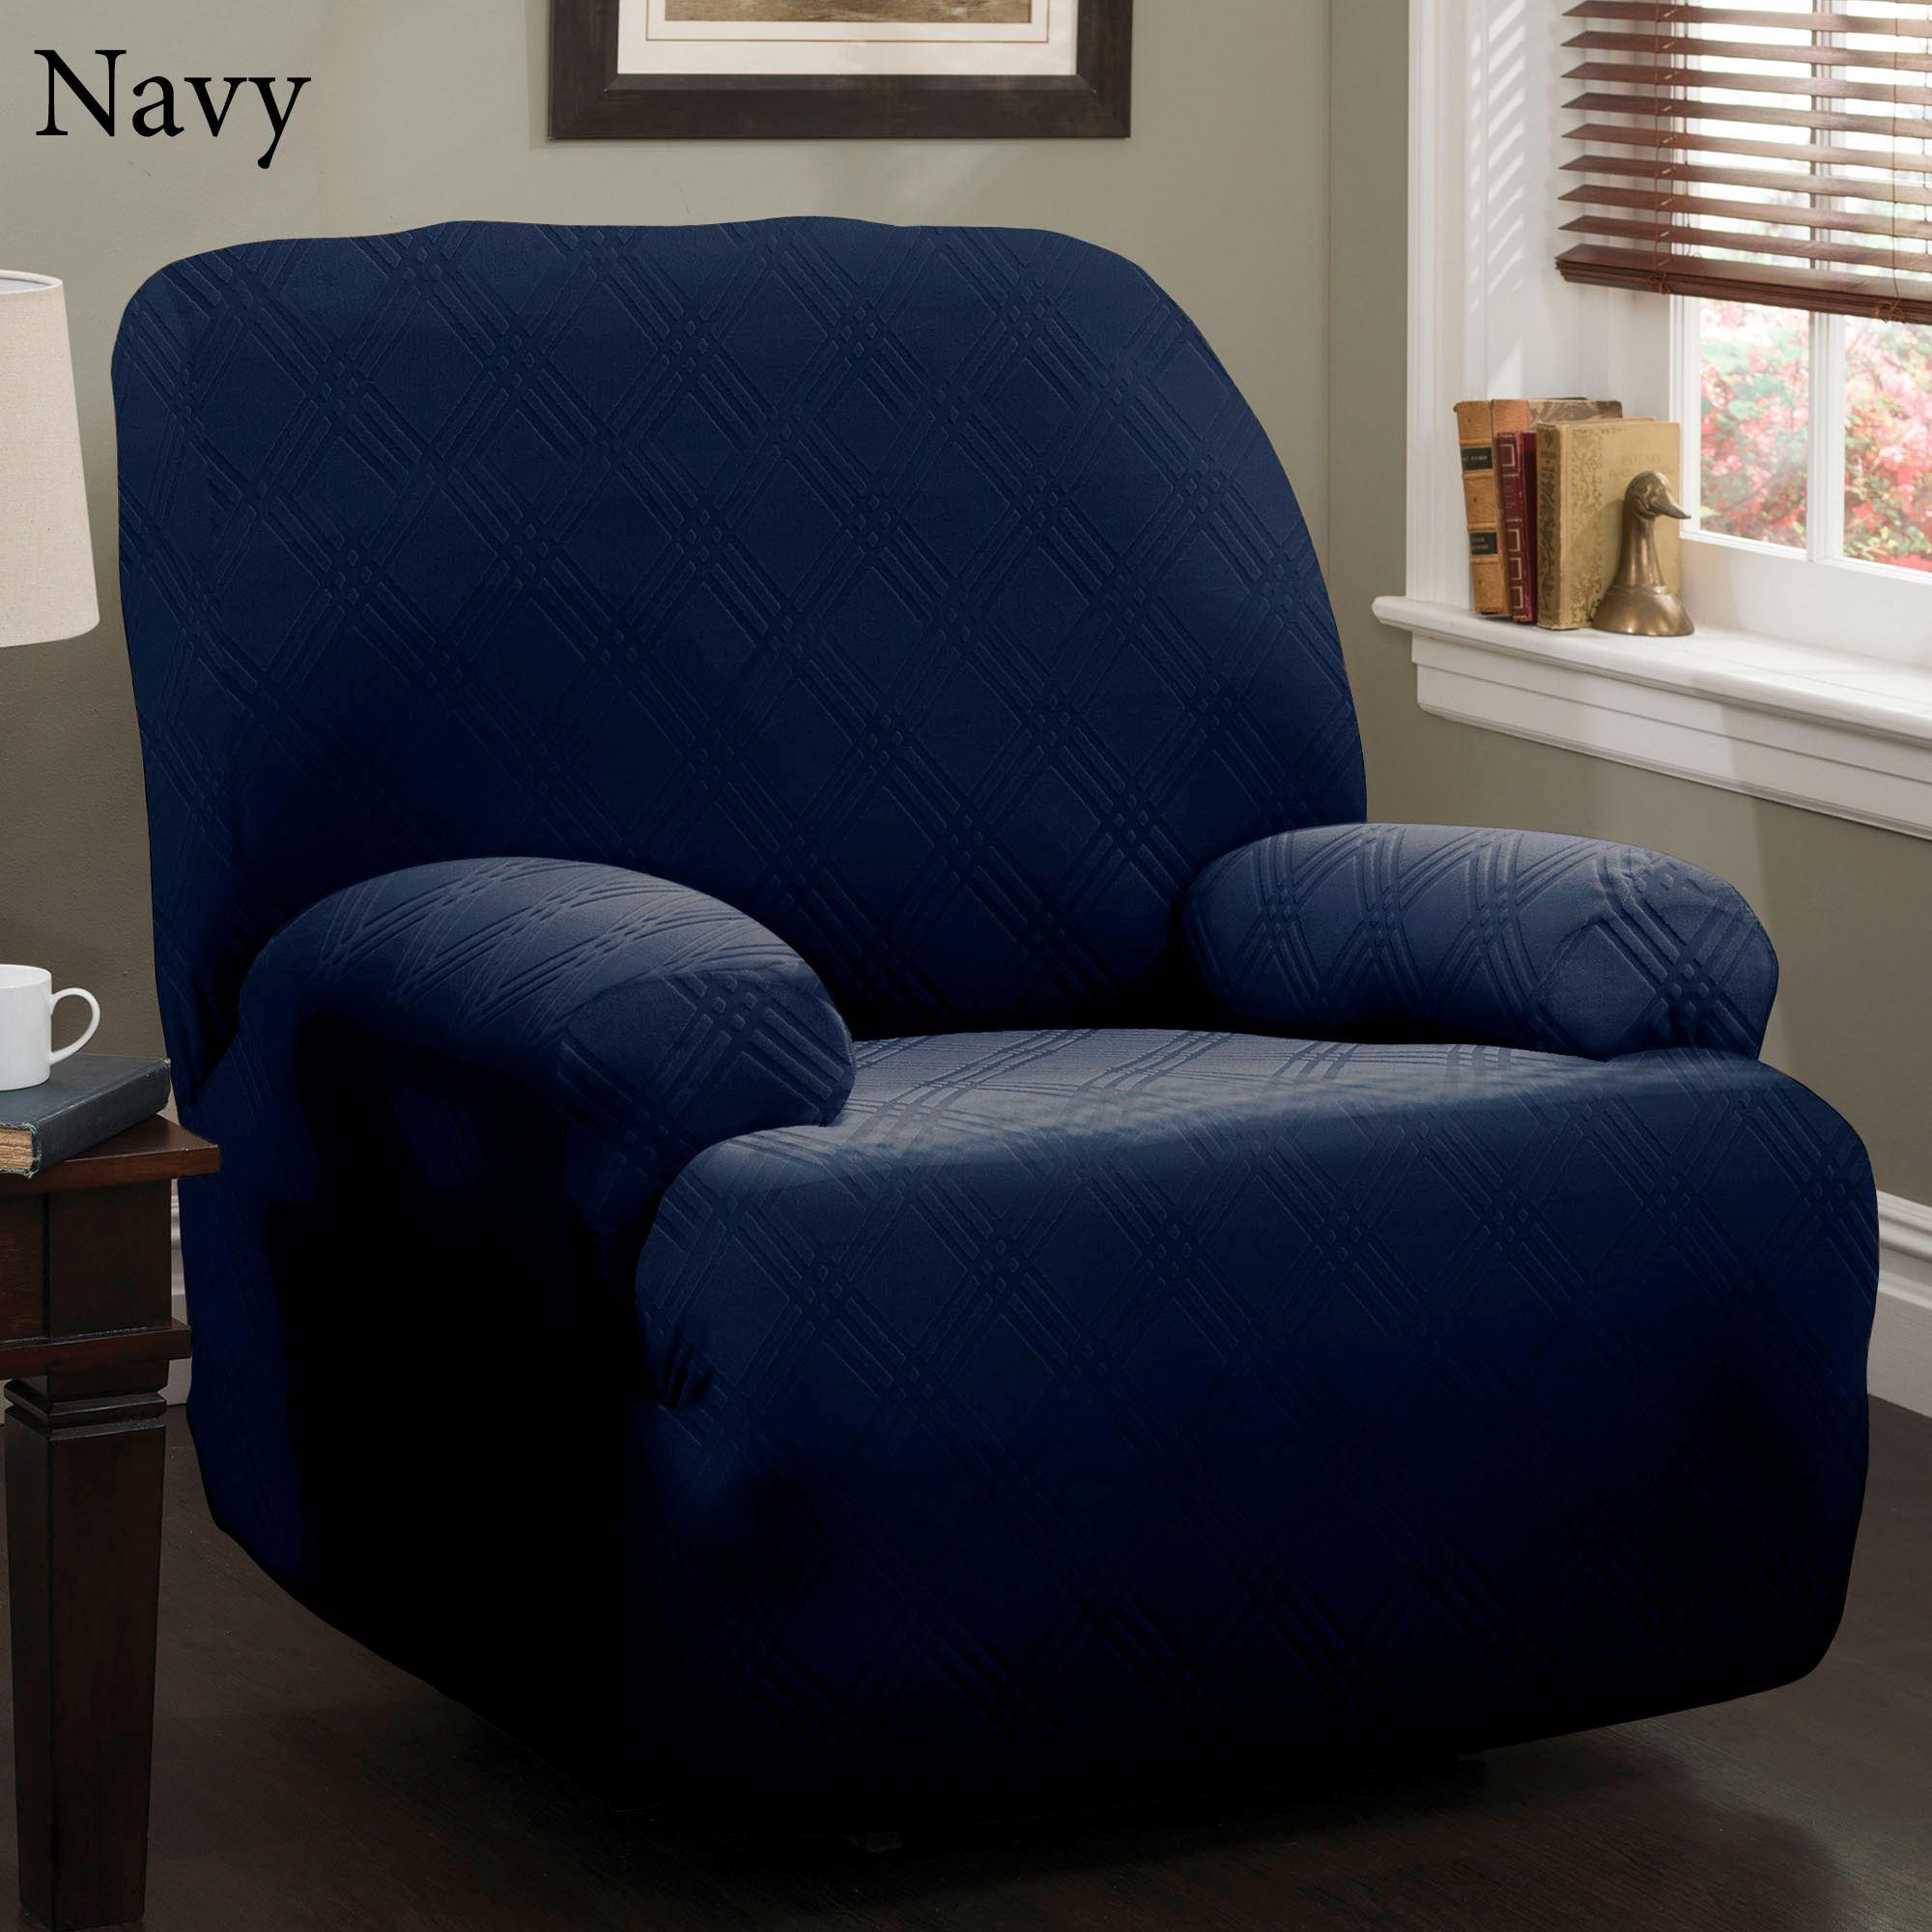 Double Diamond Stretch Jumbo Recliner Slipcovers Throughout Blue Slipcovers (Image 7 of 20)